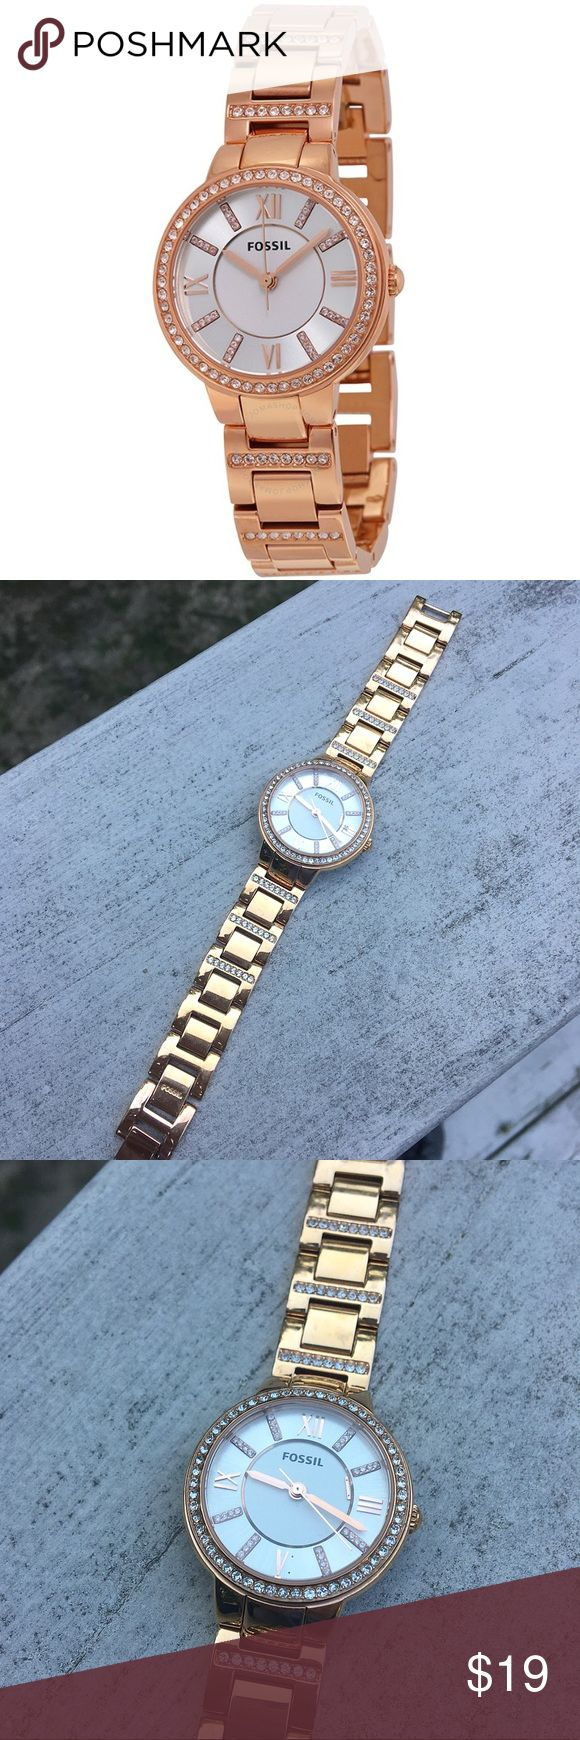 Rose Gold Fossil Watch Women's rose gold Fossil watch with removable chain link band and swarovsky crystals on band, bezel, and inside the face. Watch has only been warn few times and is in great condition but needs a new battery. Also, one of the 6 markers are loose and floating in face. This can be repaired by Fossil if sent to company. Authentic. No trades! Fossil Accessories Watches